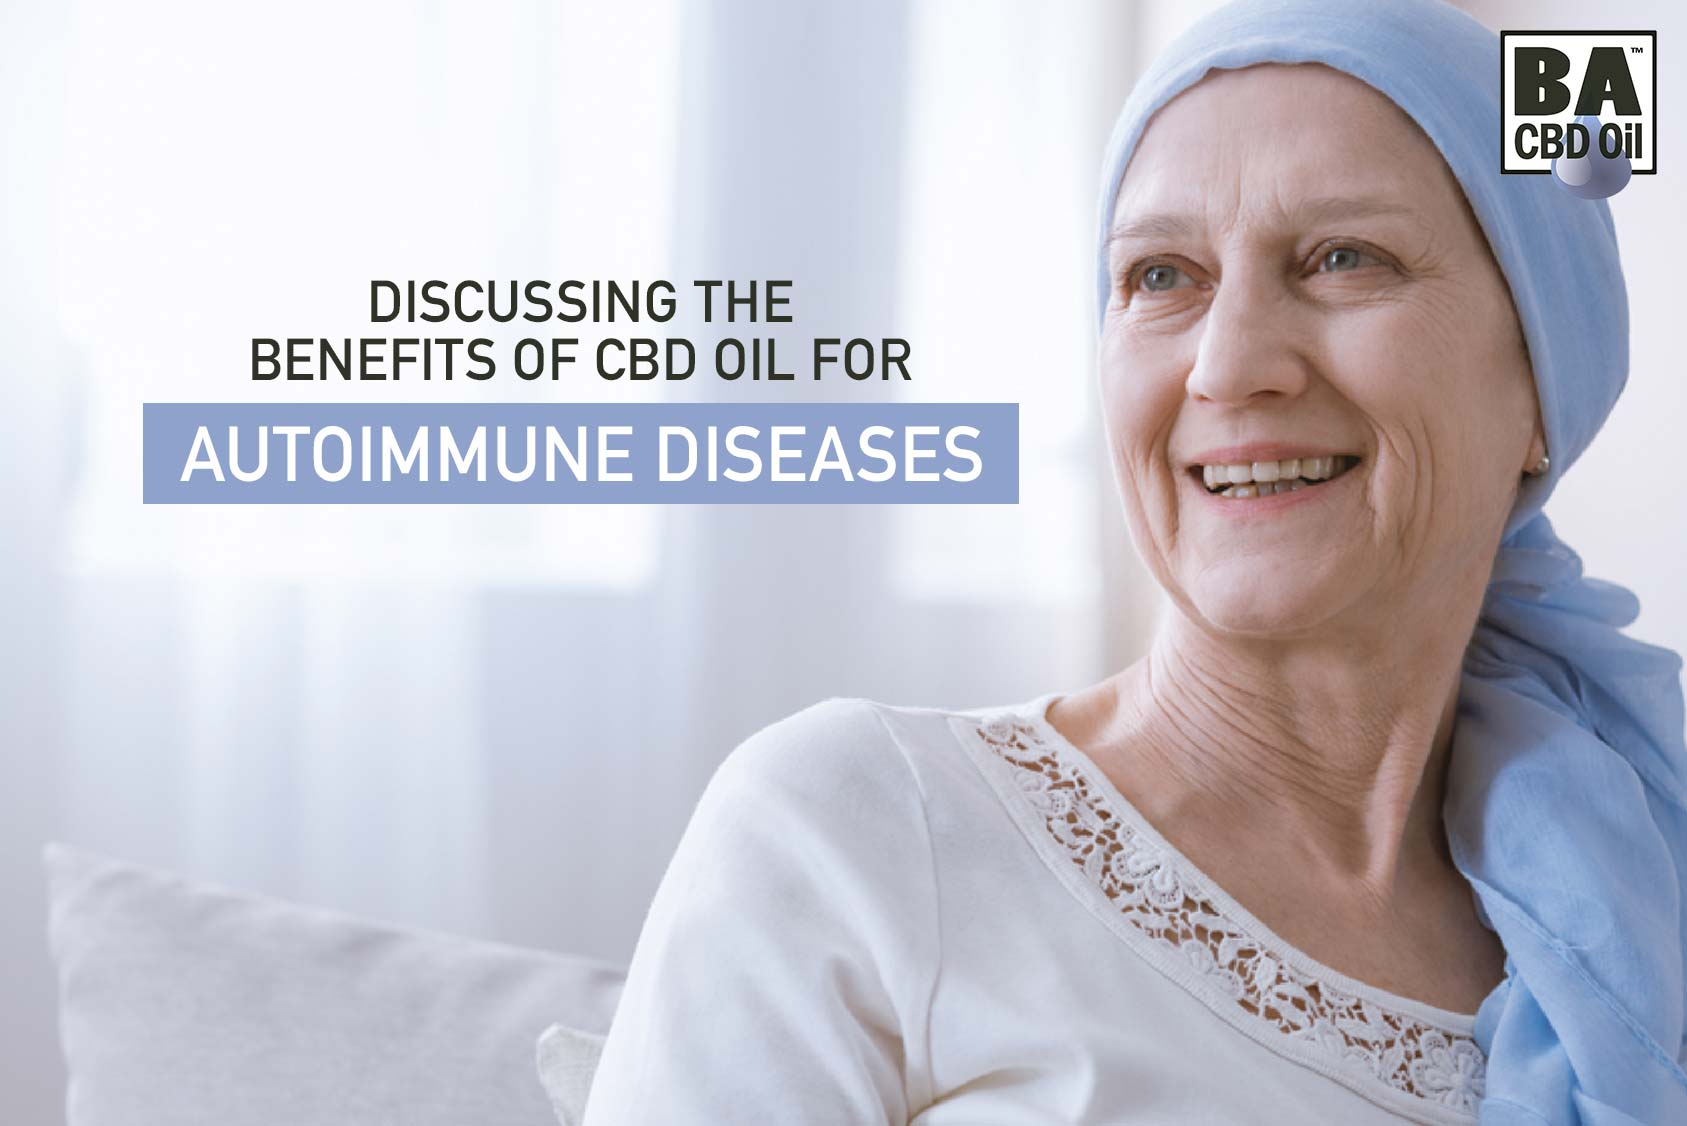 Benefits of CBD Oil for autoimmune diseases